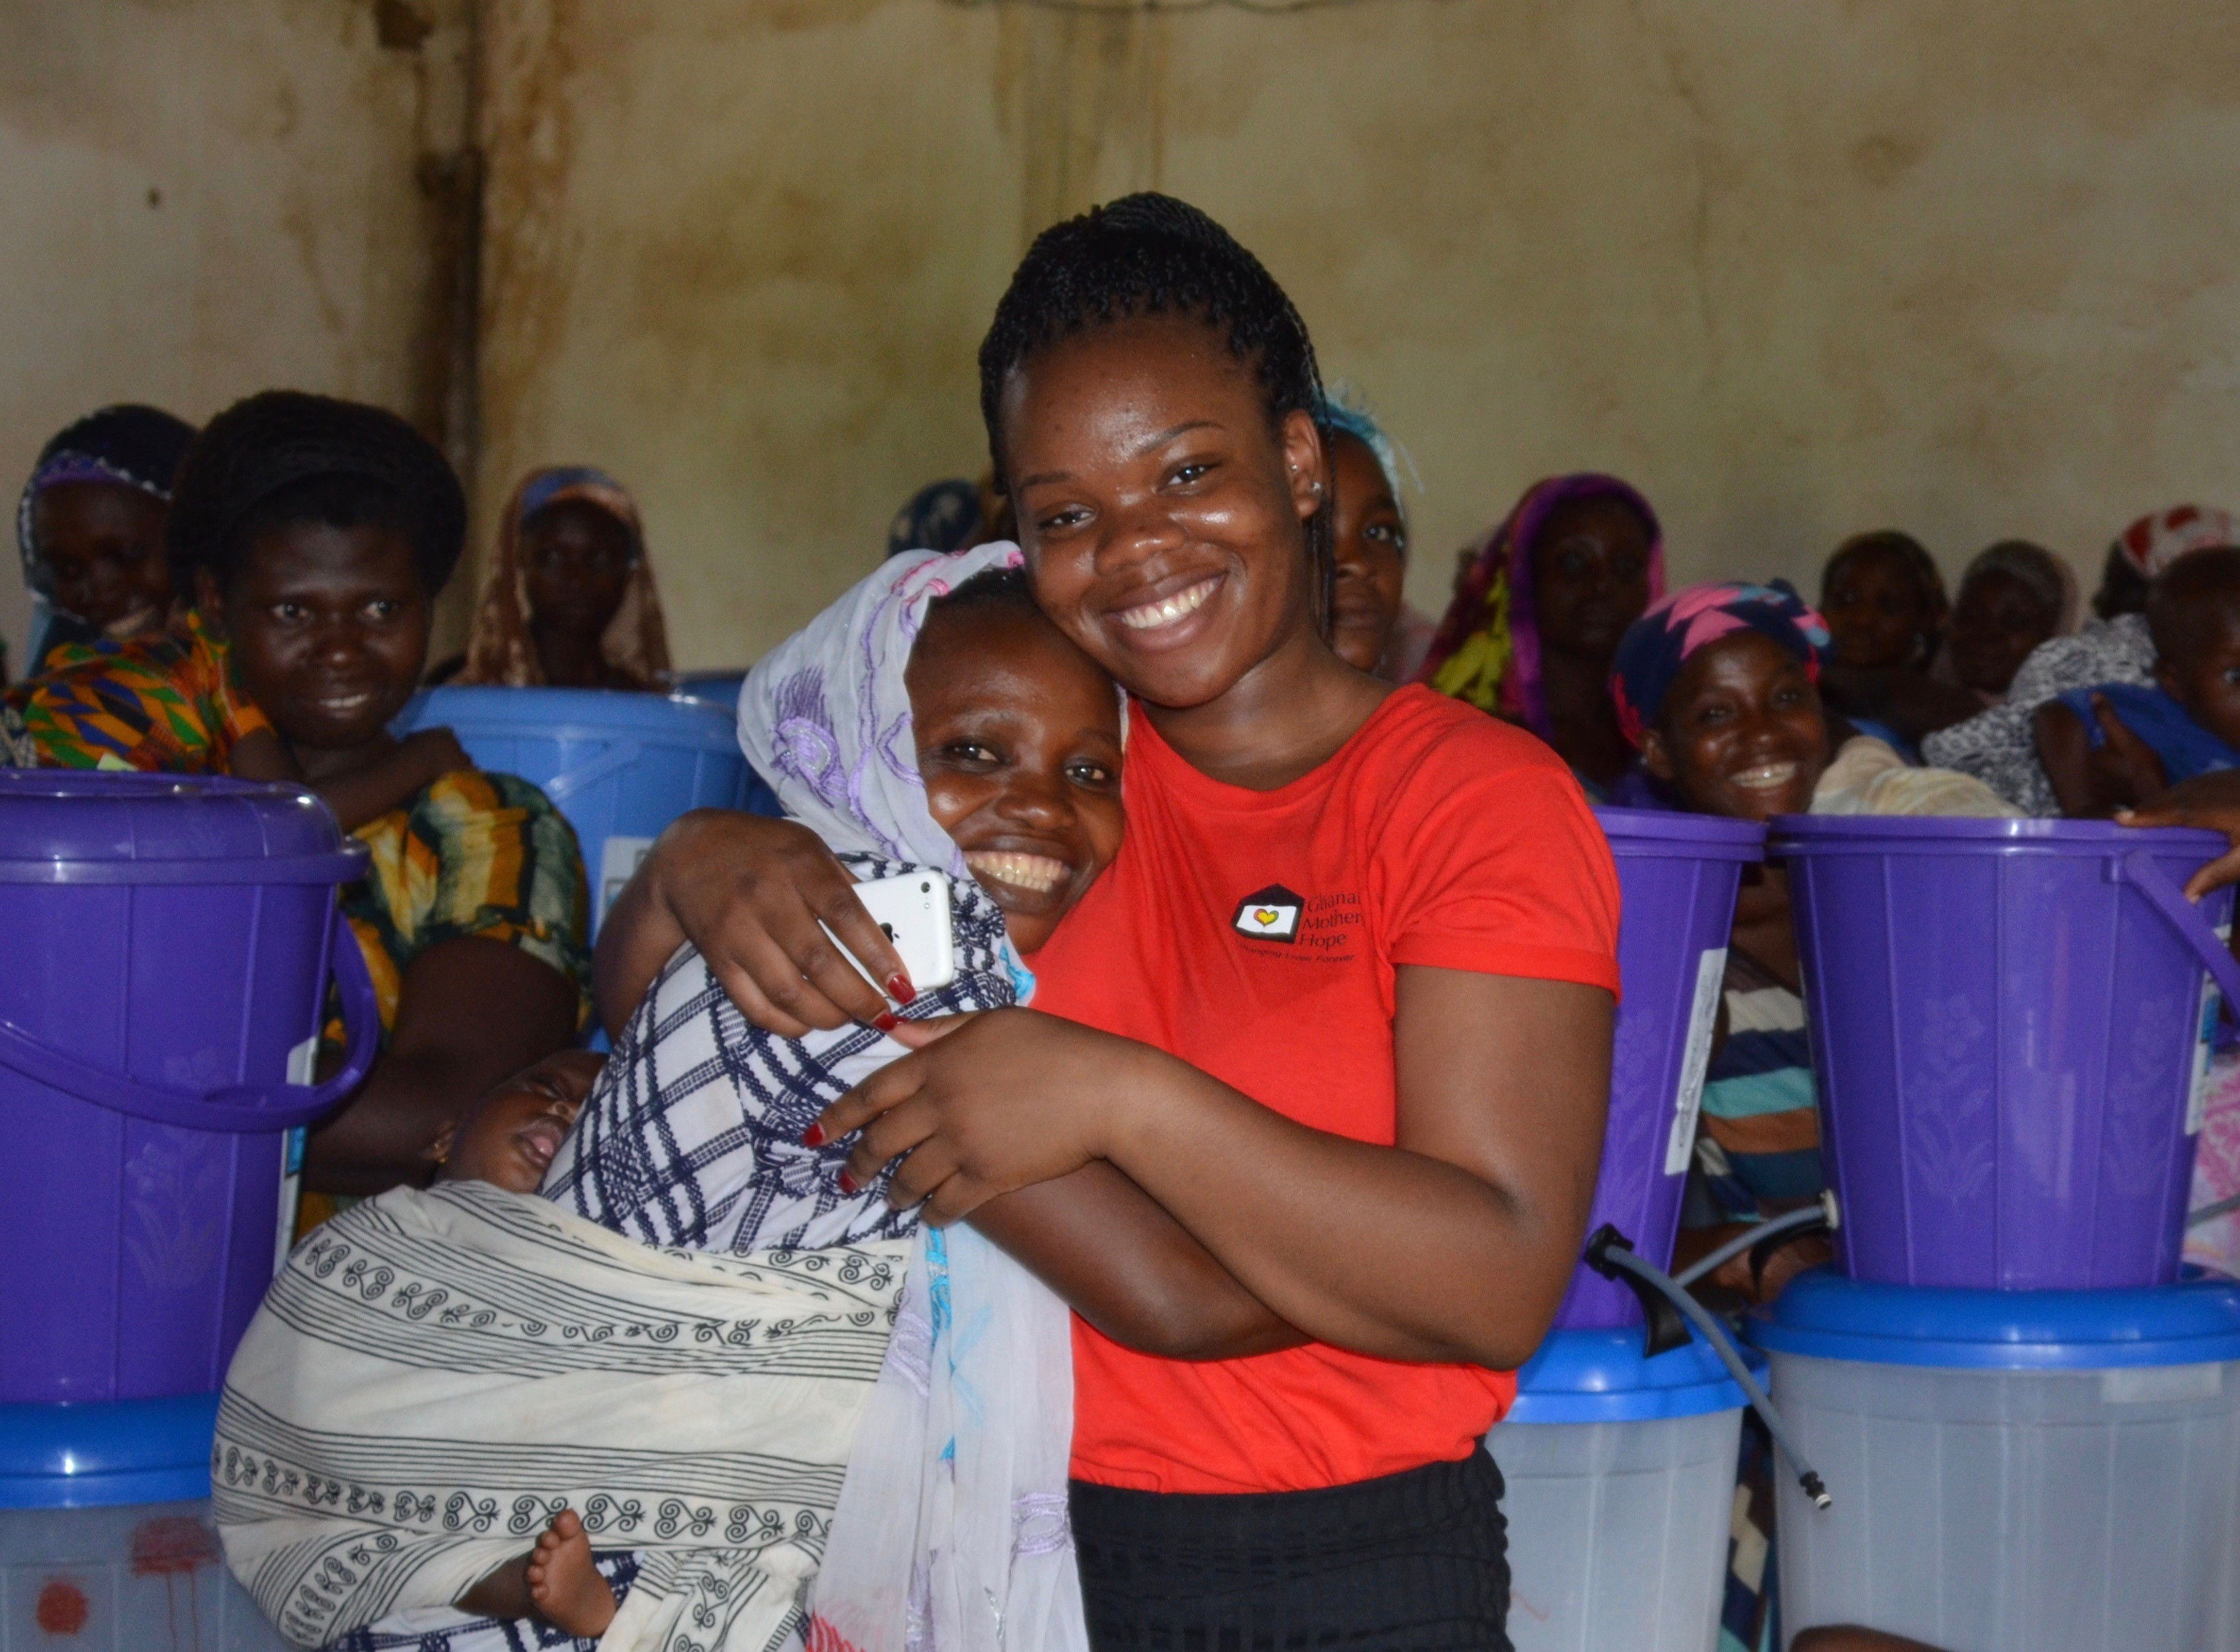 Support Ghanaian Mothers Hope: Skills Needed—LOVE